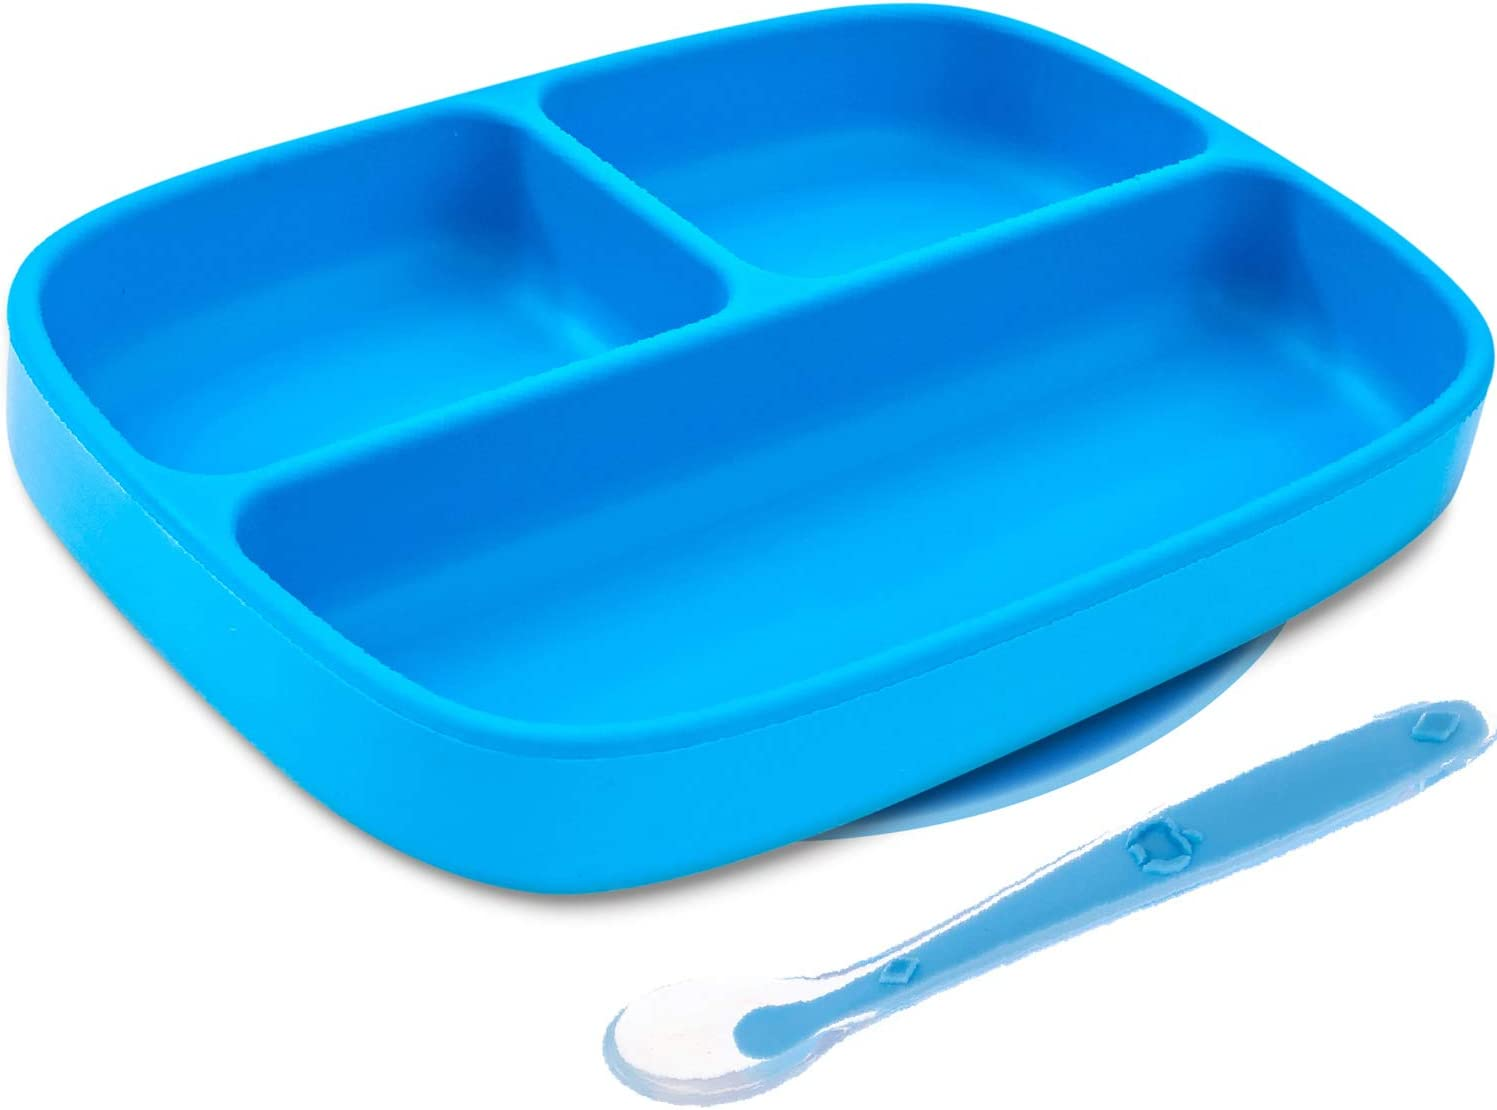 Silikong Suction Plate for Toddlers + Silicone Spoon | Microwave, Dishwasher and Oven Safe | Stay Put Divided Baby Feeding Bowls and Dishes for Kids and Infants